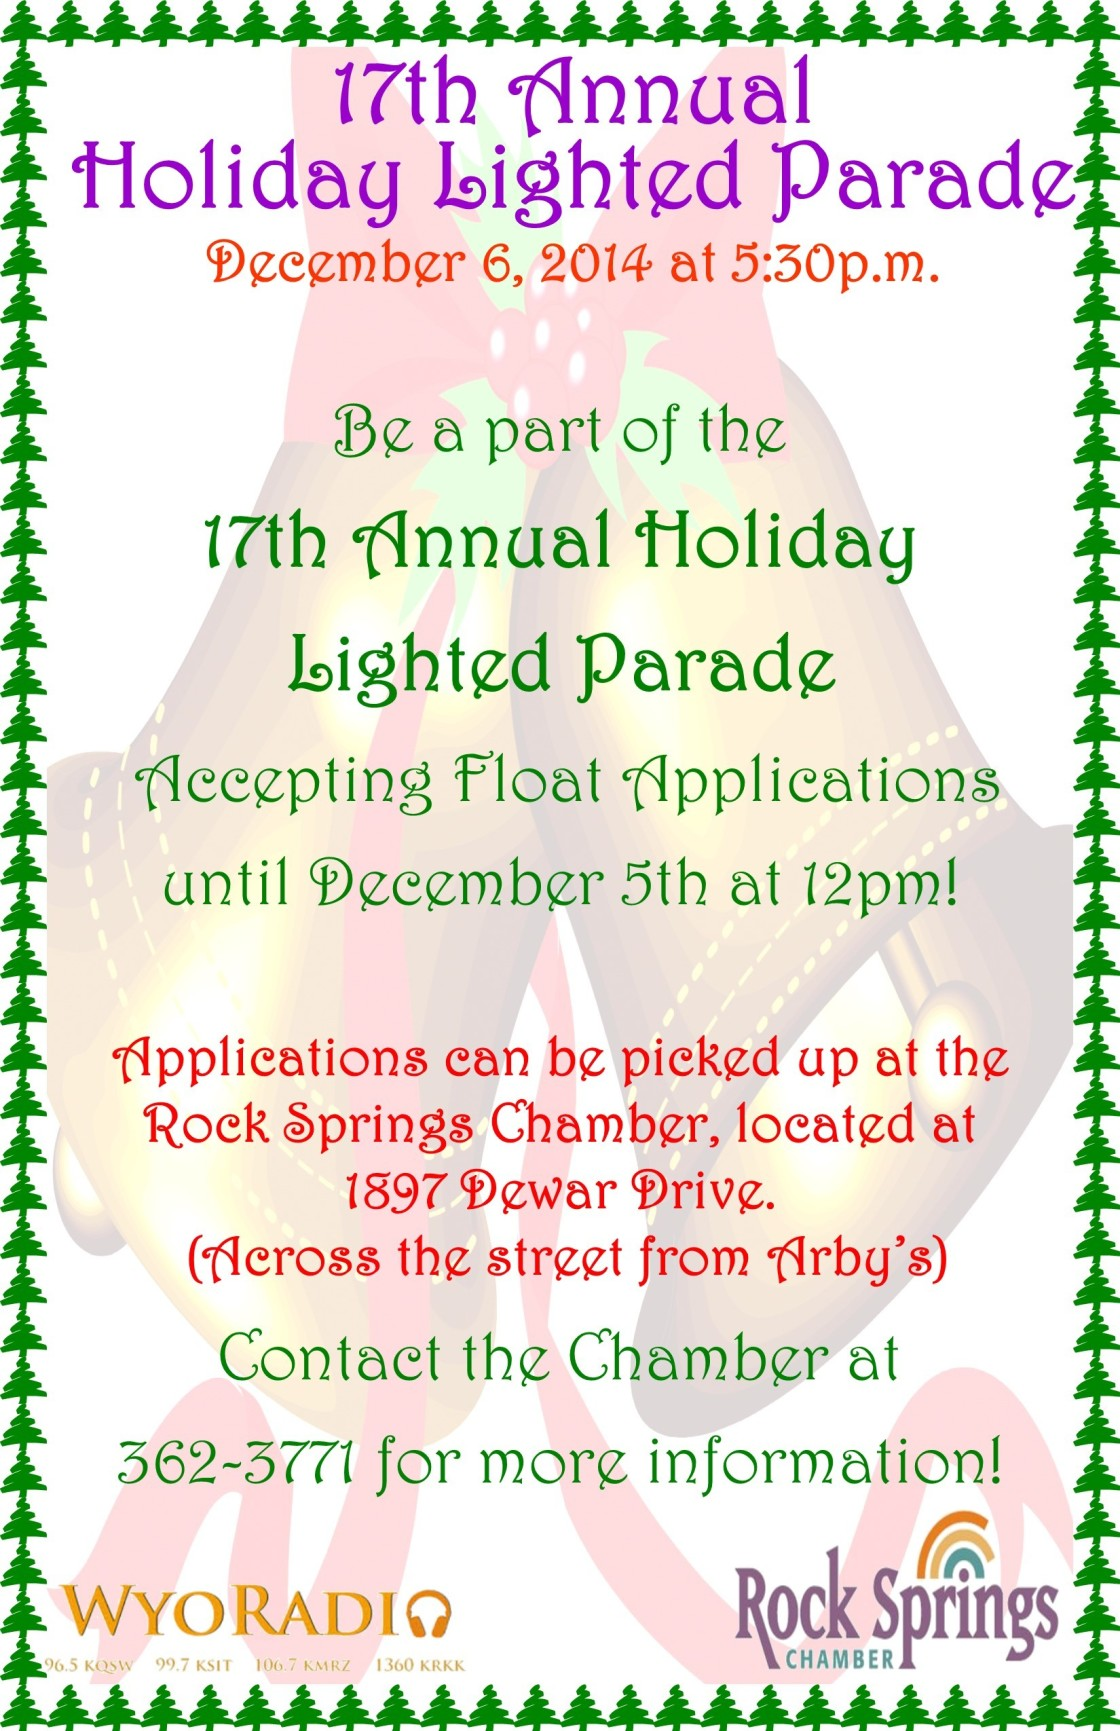 Light the Way-The 17th Annual Holiday Lighted Parade